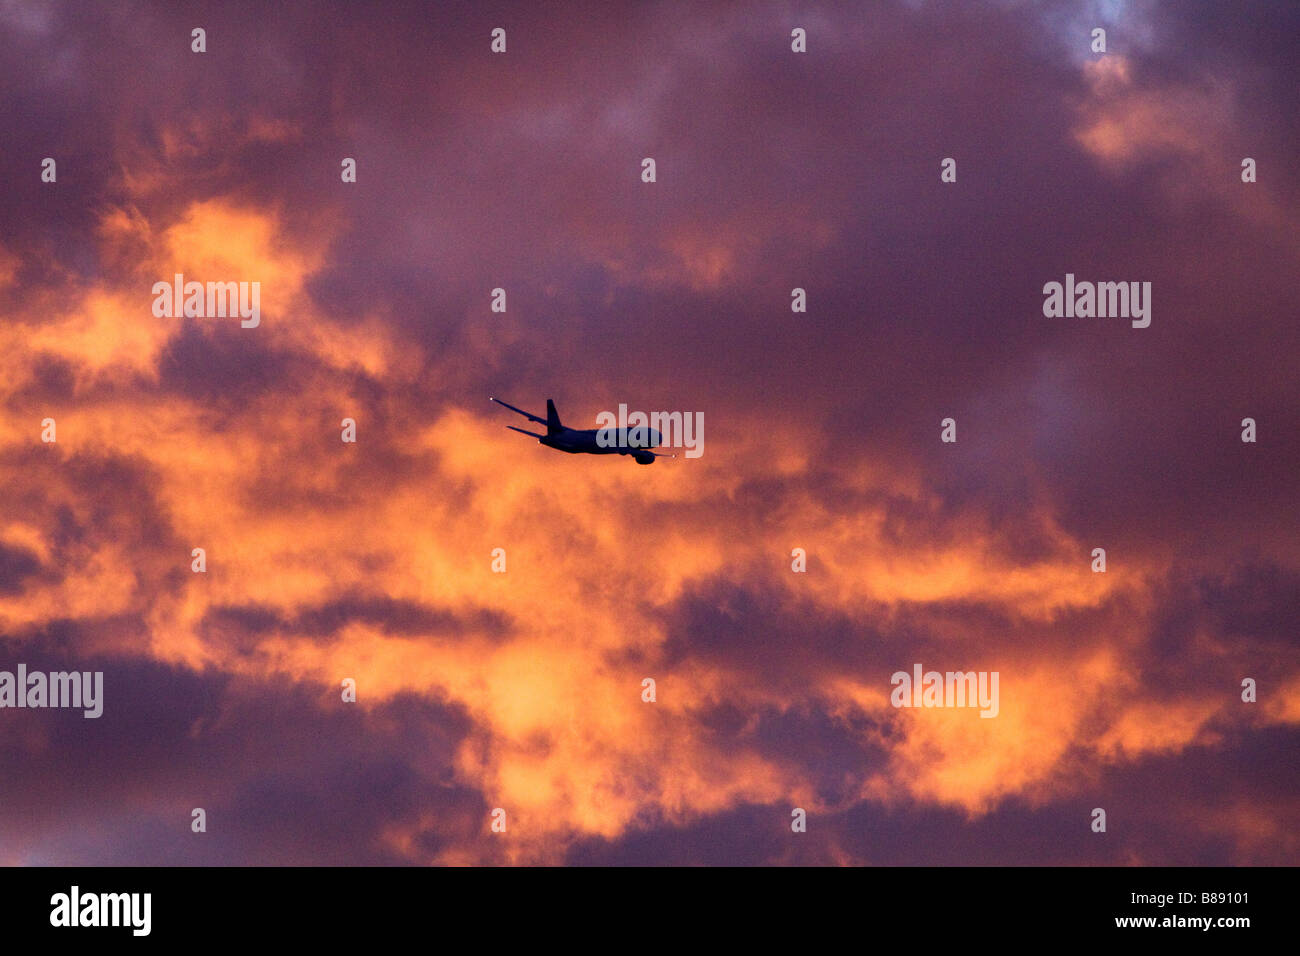 Commercial jet Plane at sunset heading toward dramatic fiery clouds - Stock Image